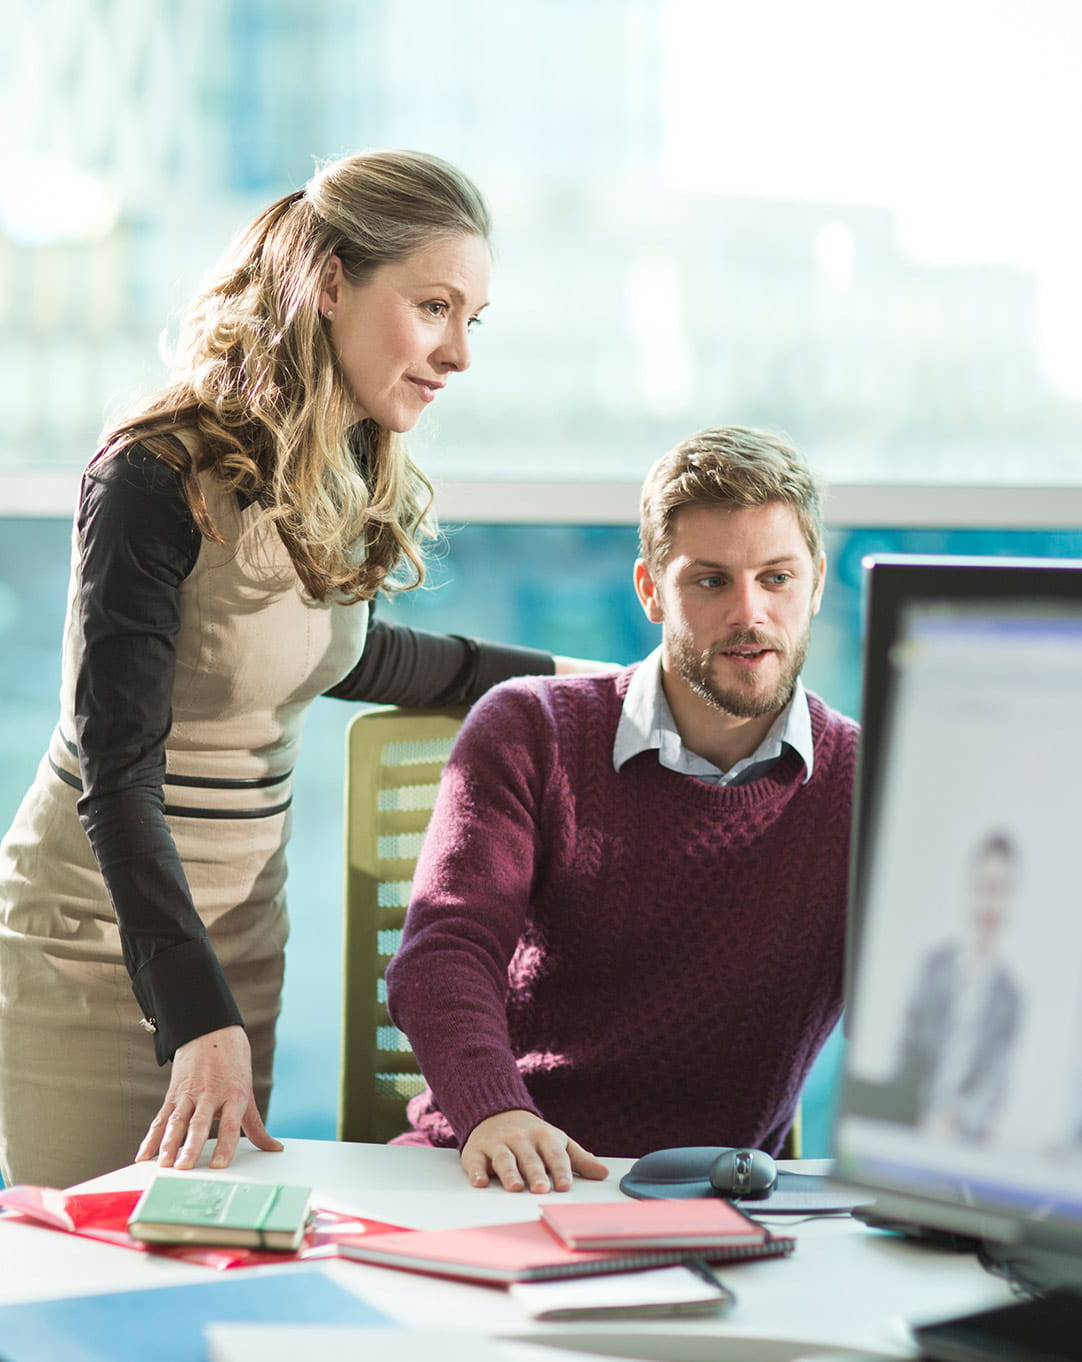 Brother OmniJoin woman observing man's work on computer